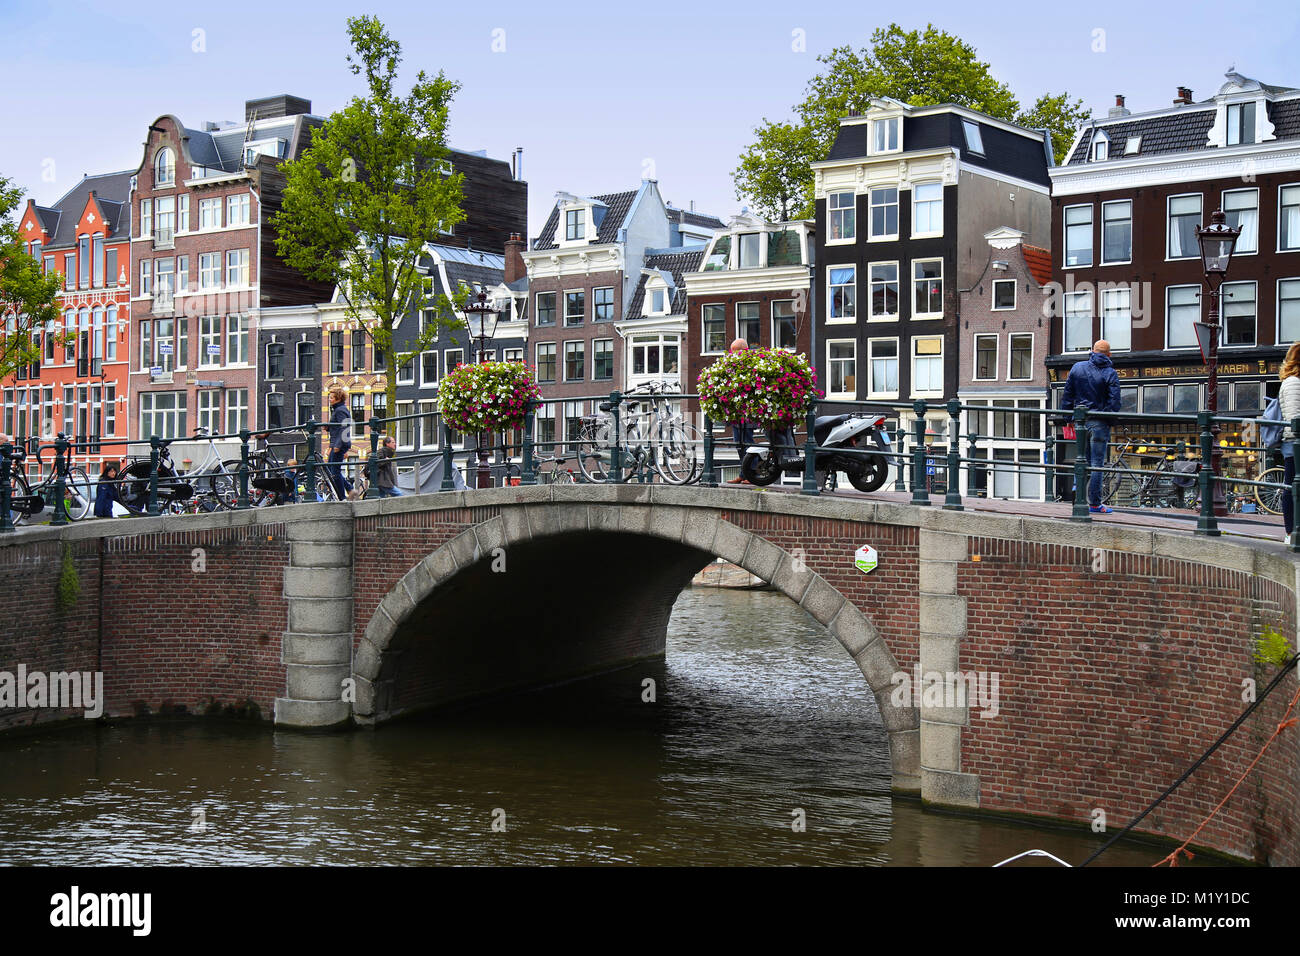 AMSTERDAM, THE NETHERLANDS - AUGUST 18, 2015: View on Prinsengracht from Spiegelgracht. Street life, Canal, pedestrians - Stock Image